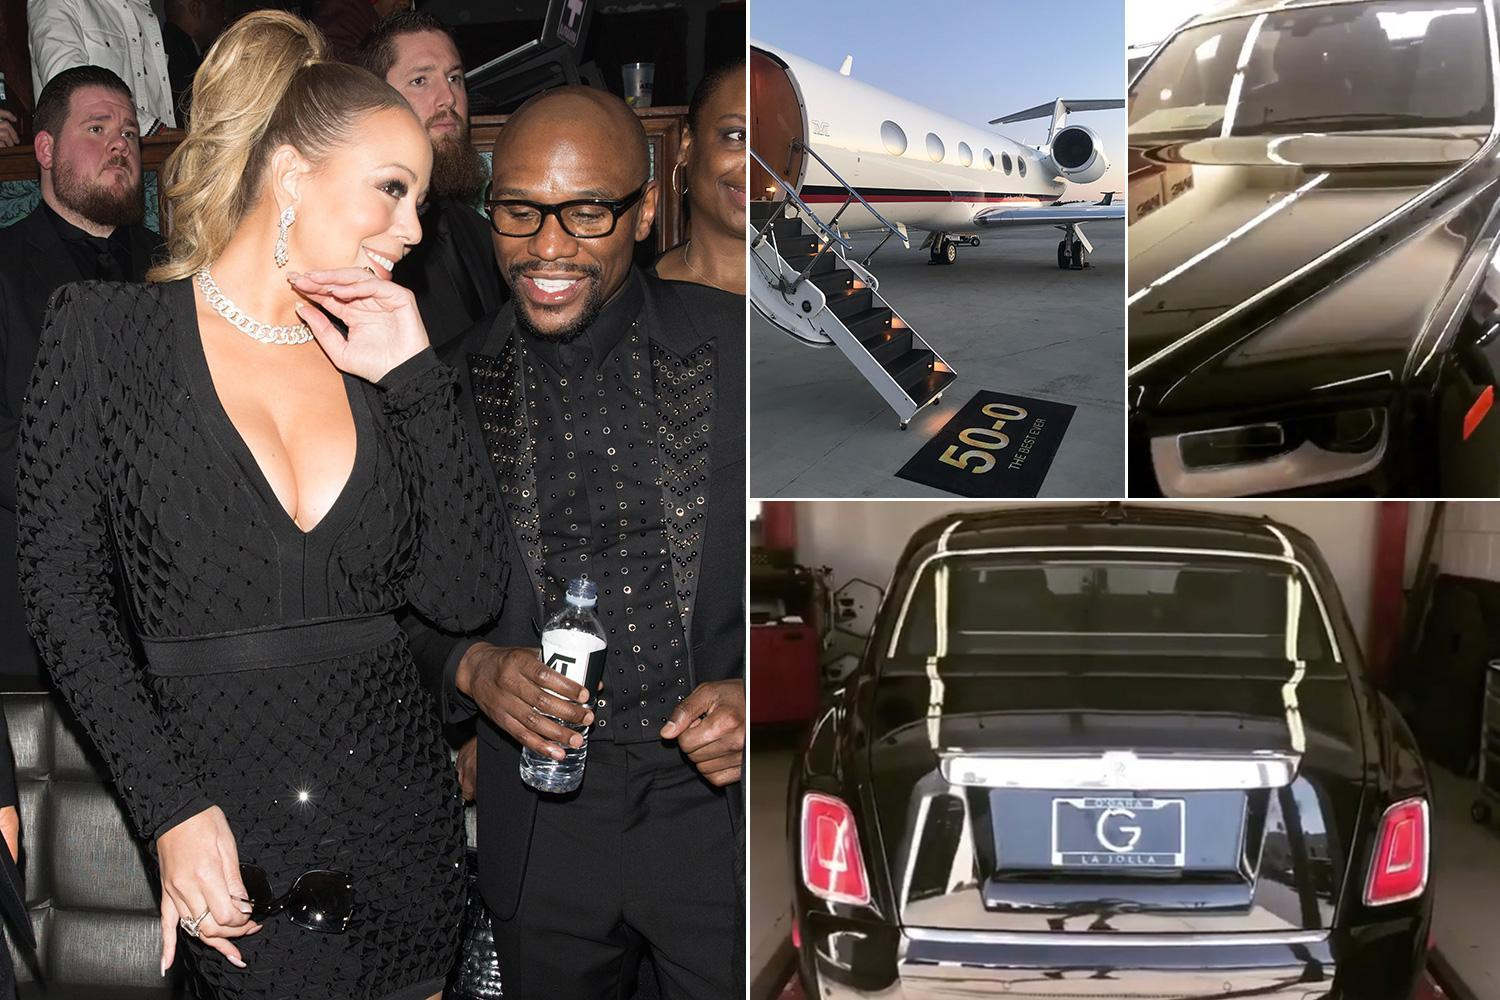 Floyd Mayweather shows off £320,000 2018 Rolls Royce Phantom to go alongside new private jet as boxer turns 41